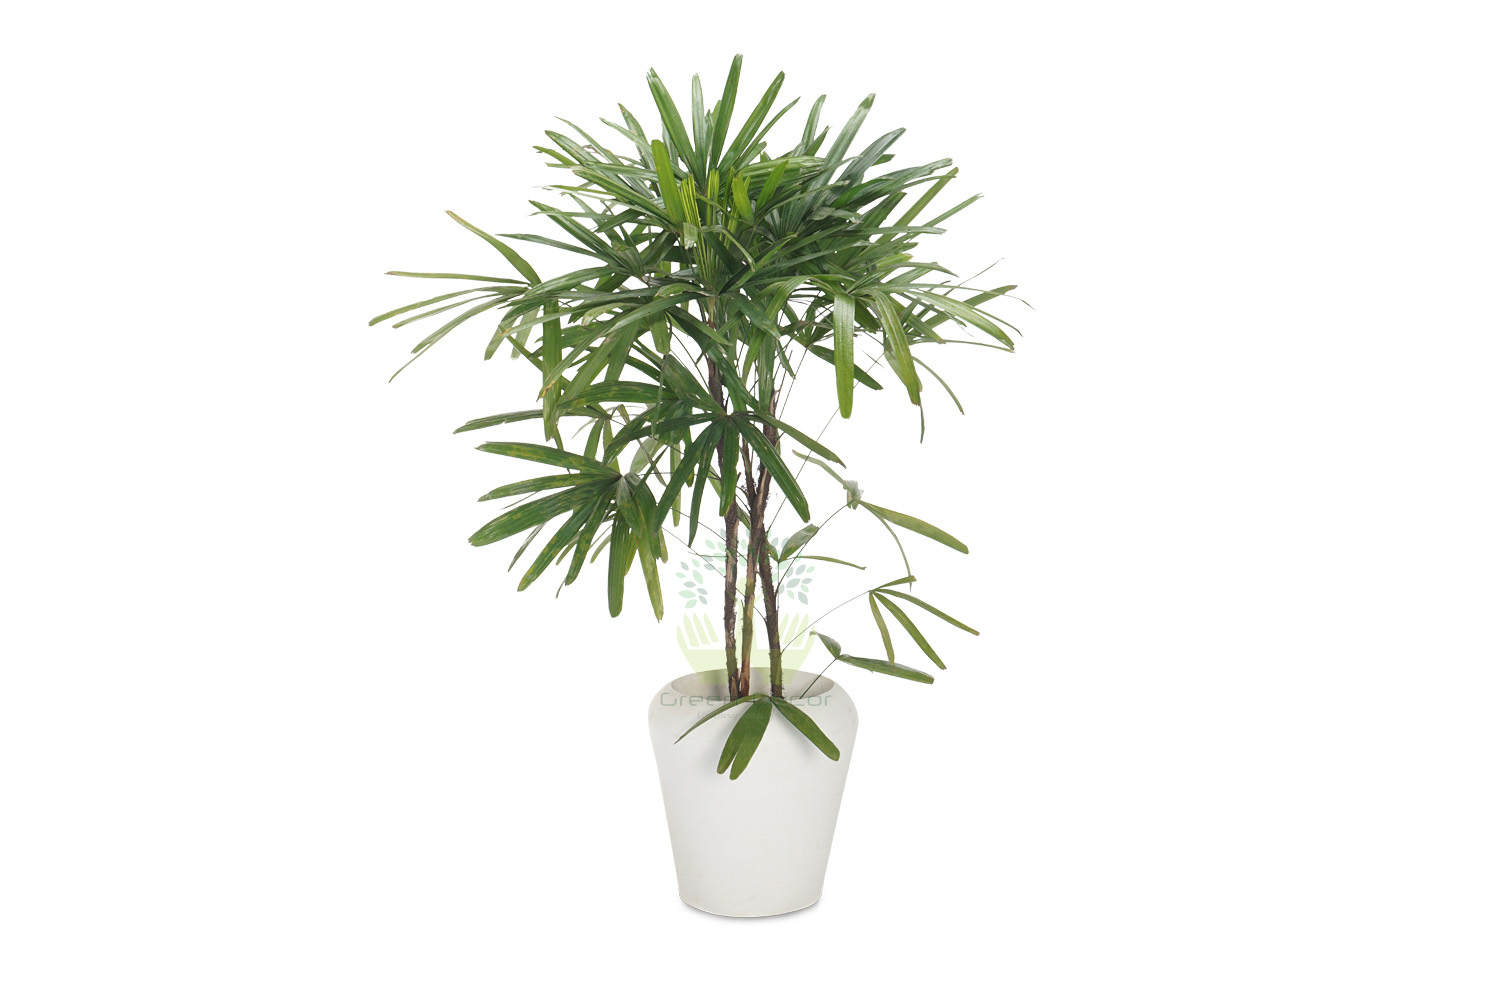 Buy Broadleaf Lady Palm Plants Front View , White Pots and seeds in Delhi NCR by the best online nursery shop Greendecor.